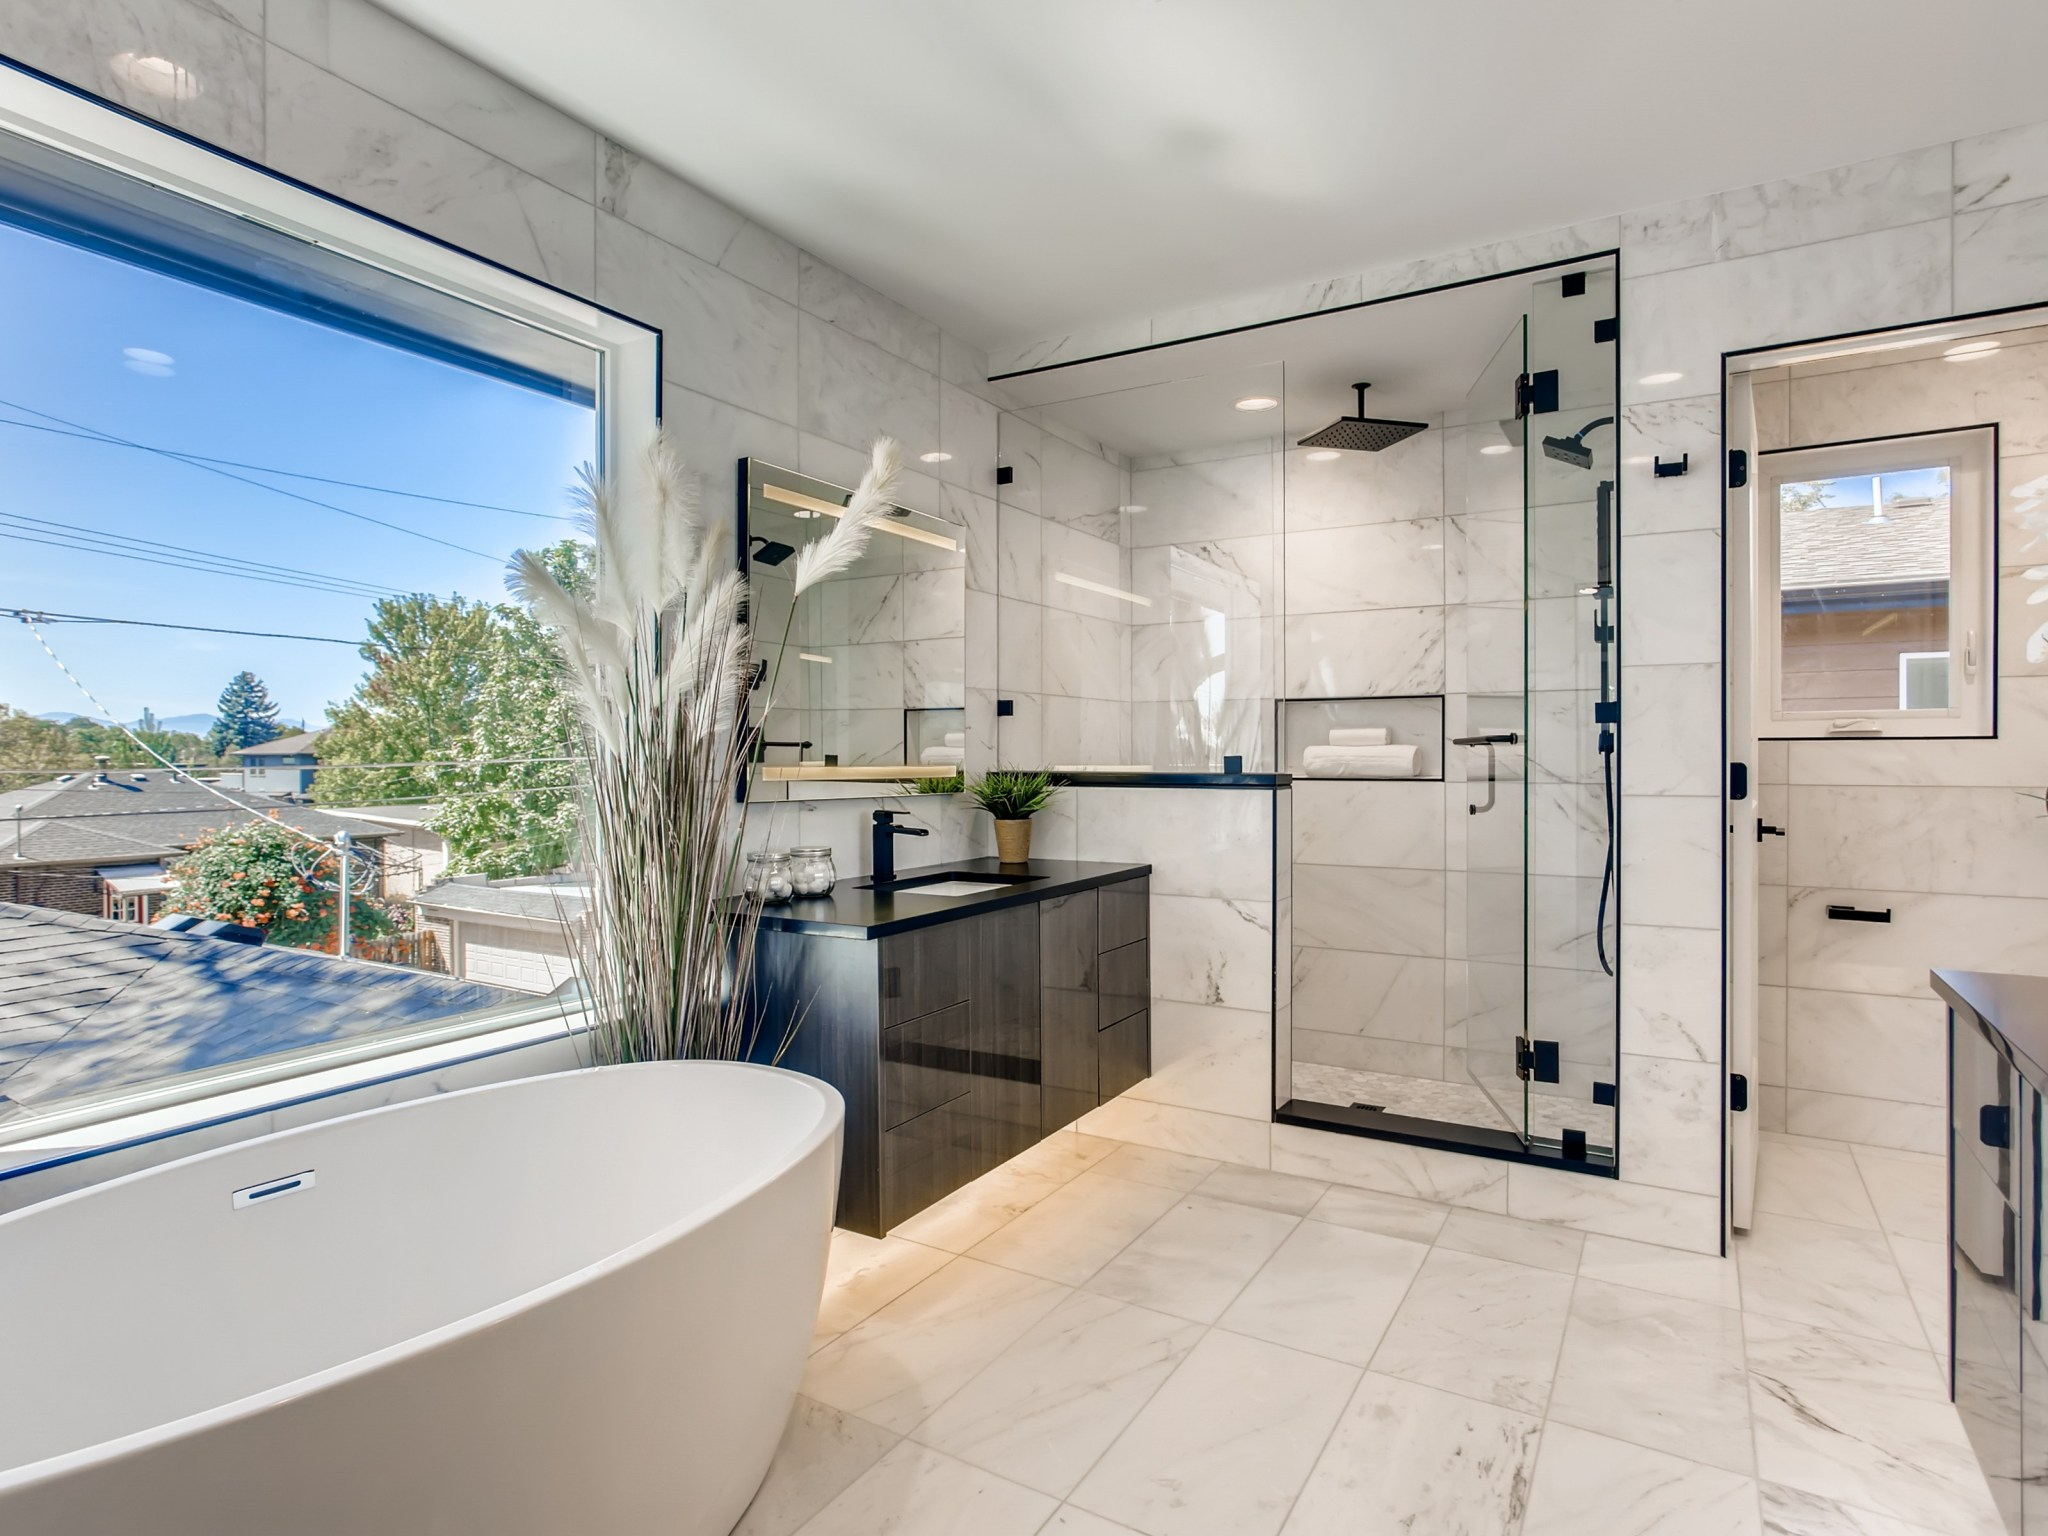 Spa inspired Master Bath with Steam shower and freestanding tub.